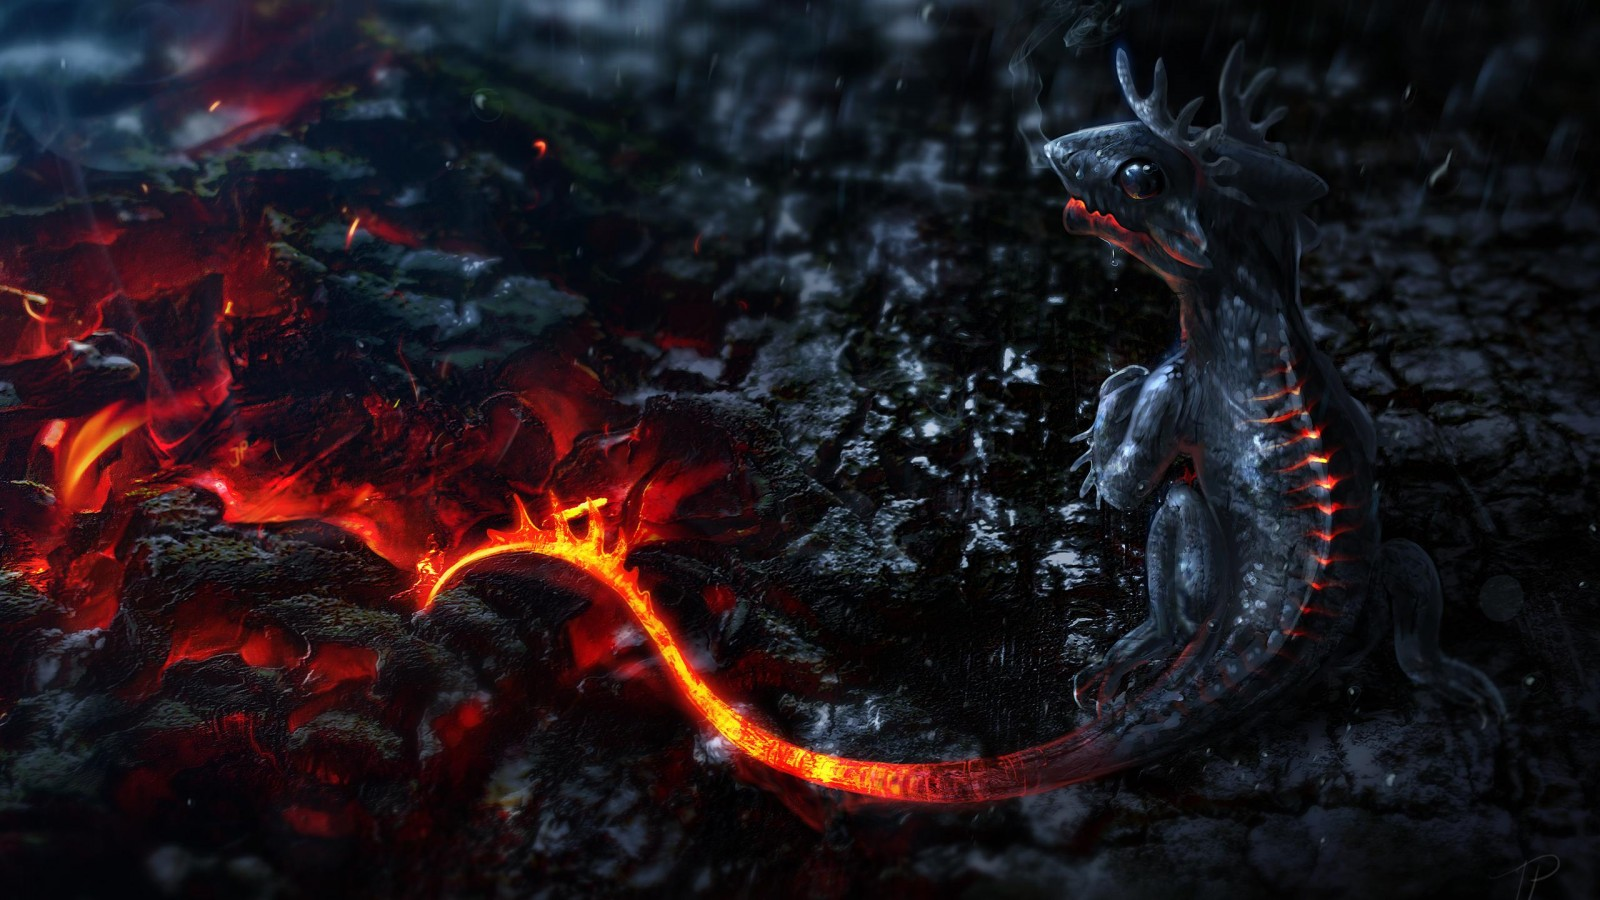 Cute dragon HD Wallpaper